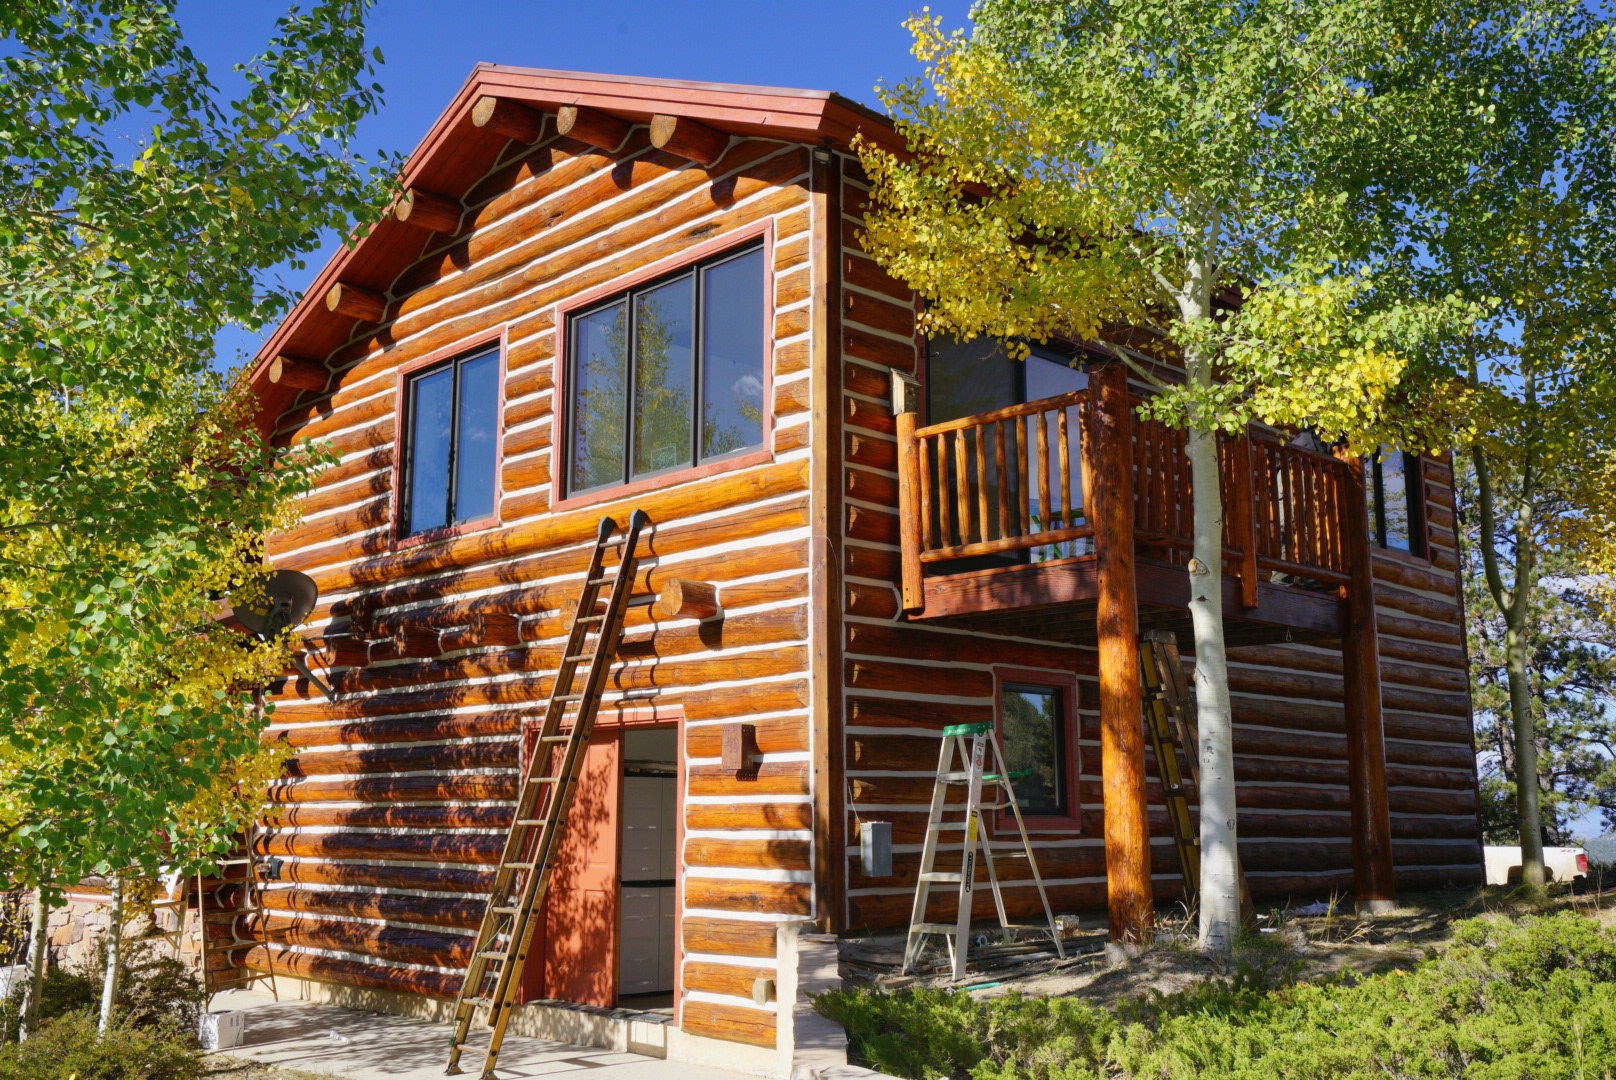 earth of prettiest on cabins denver mount to elbert in places one welcome vacation colorado the